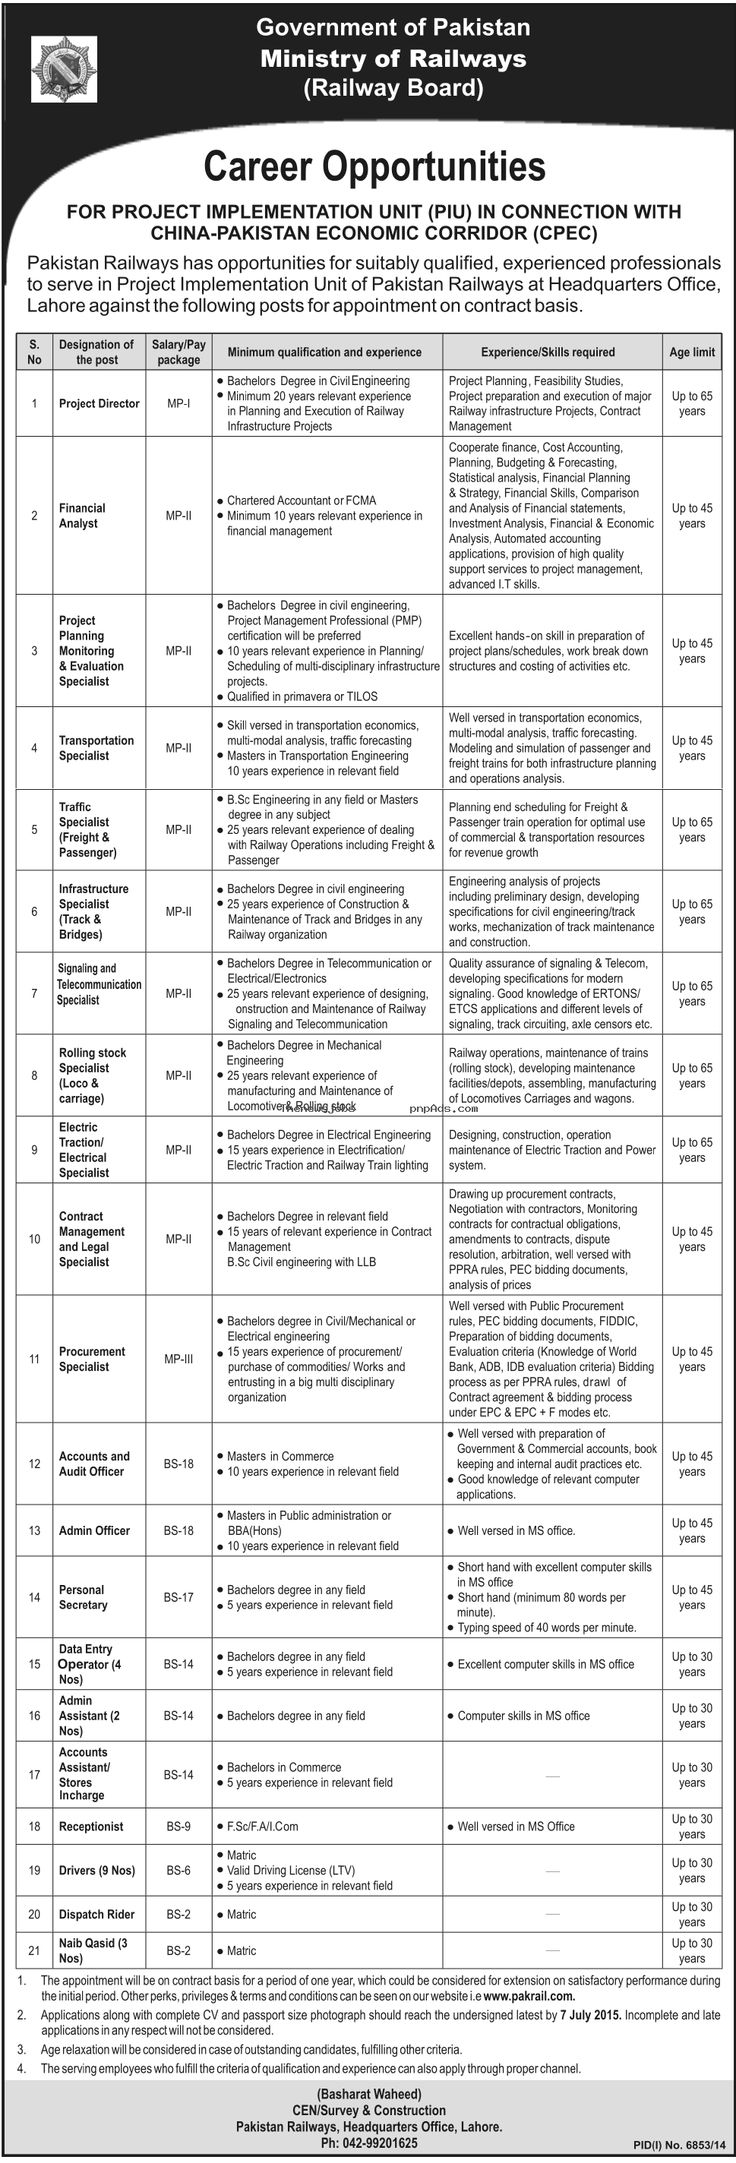 Ministry of Railways Government of Pakistan Railways Board Lahore career Opportunities